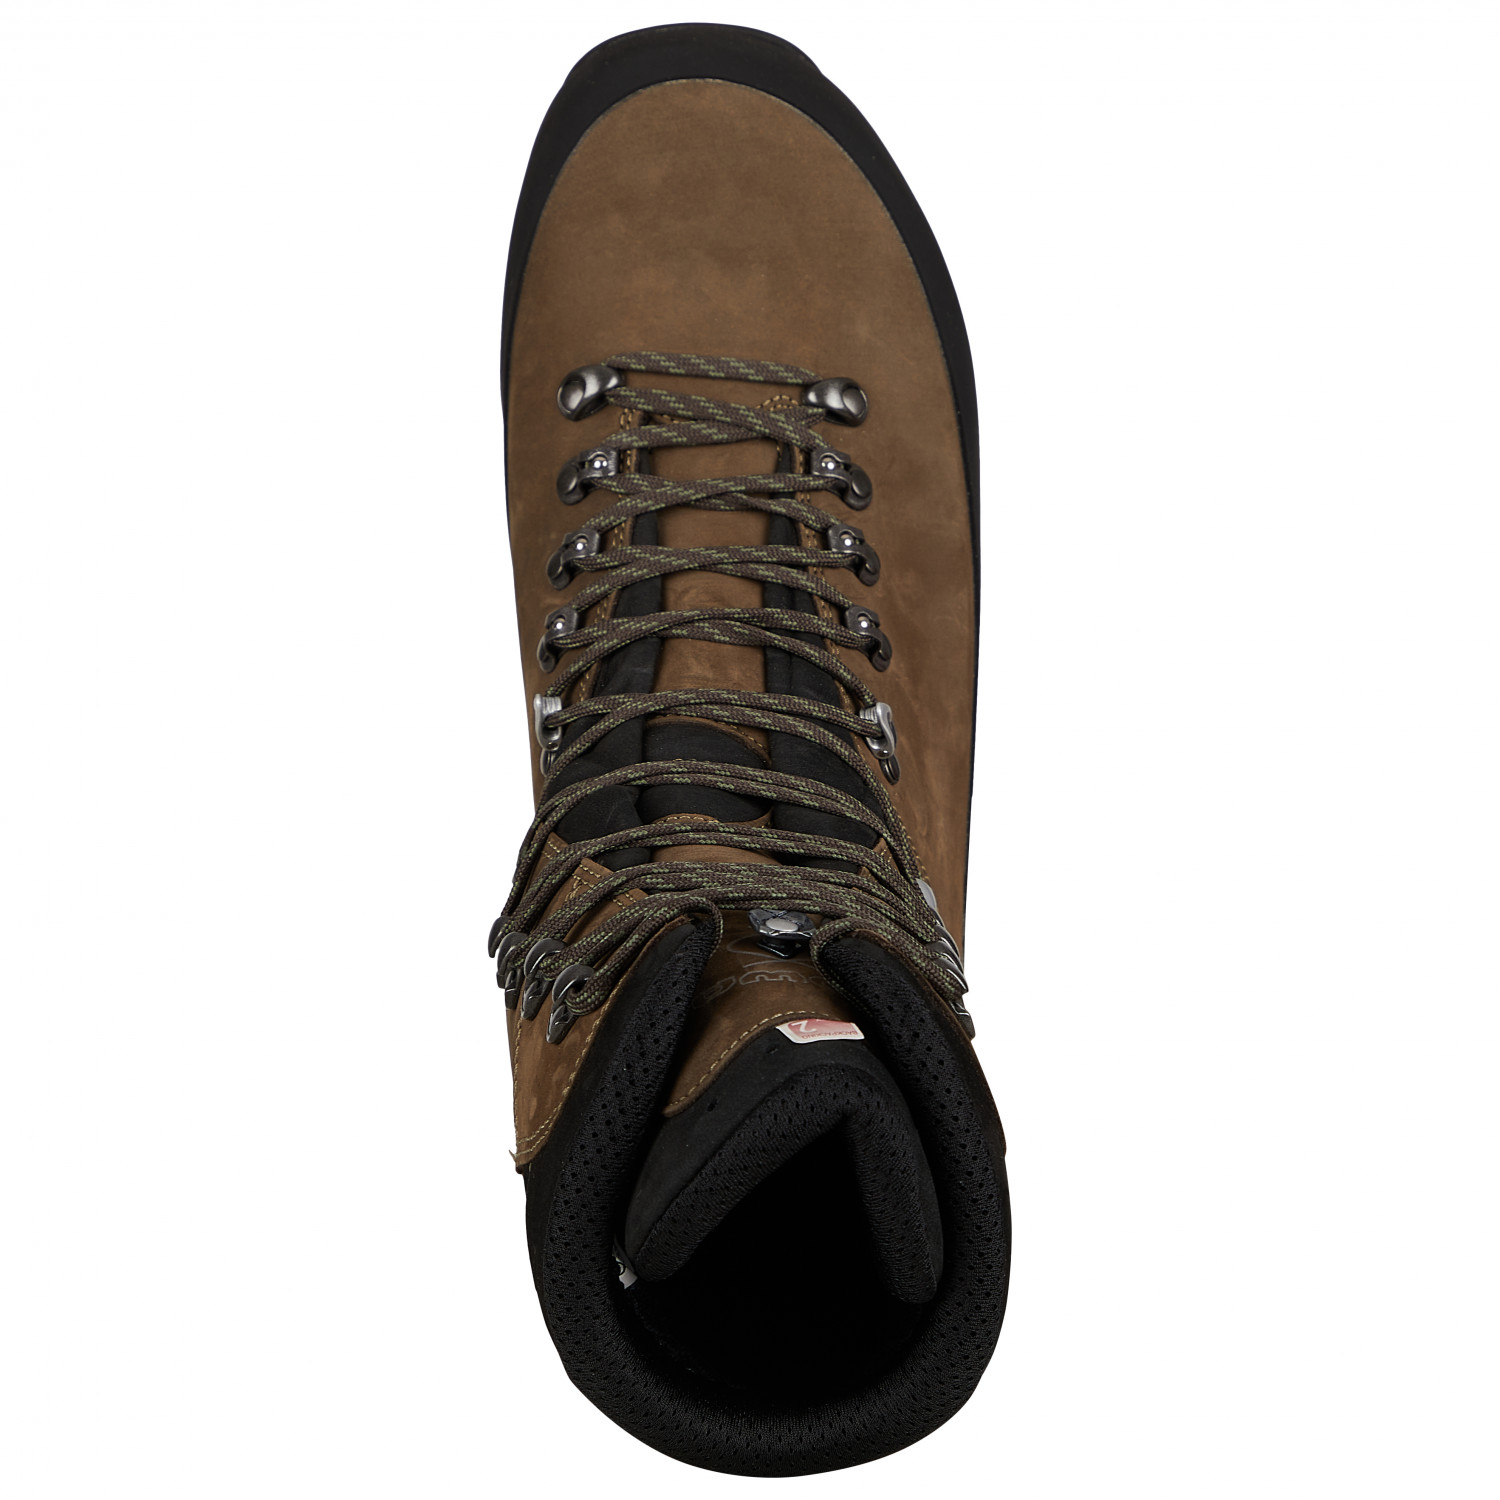 a420e92afbd89d Lowa Tibet GTX Hi - Walking Boots Men's | Free UK Delivery ...